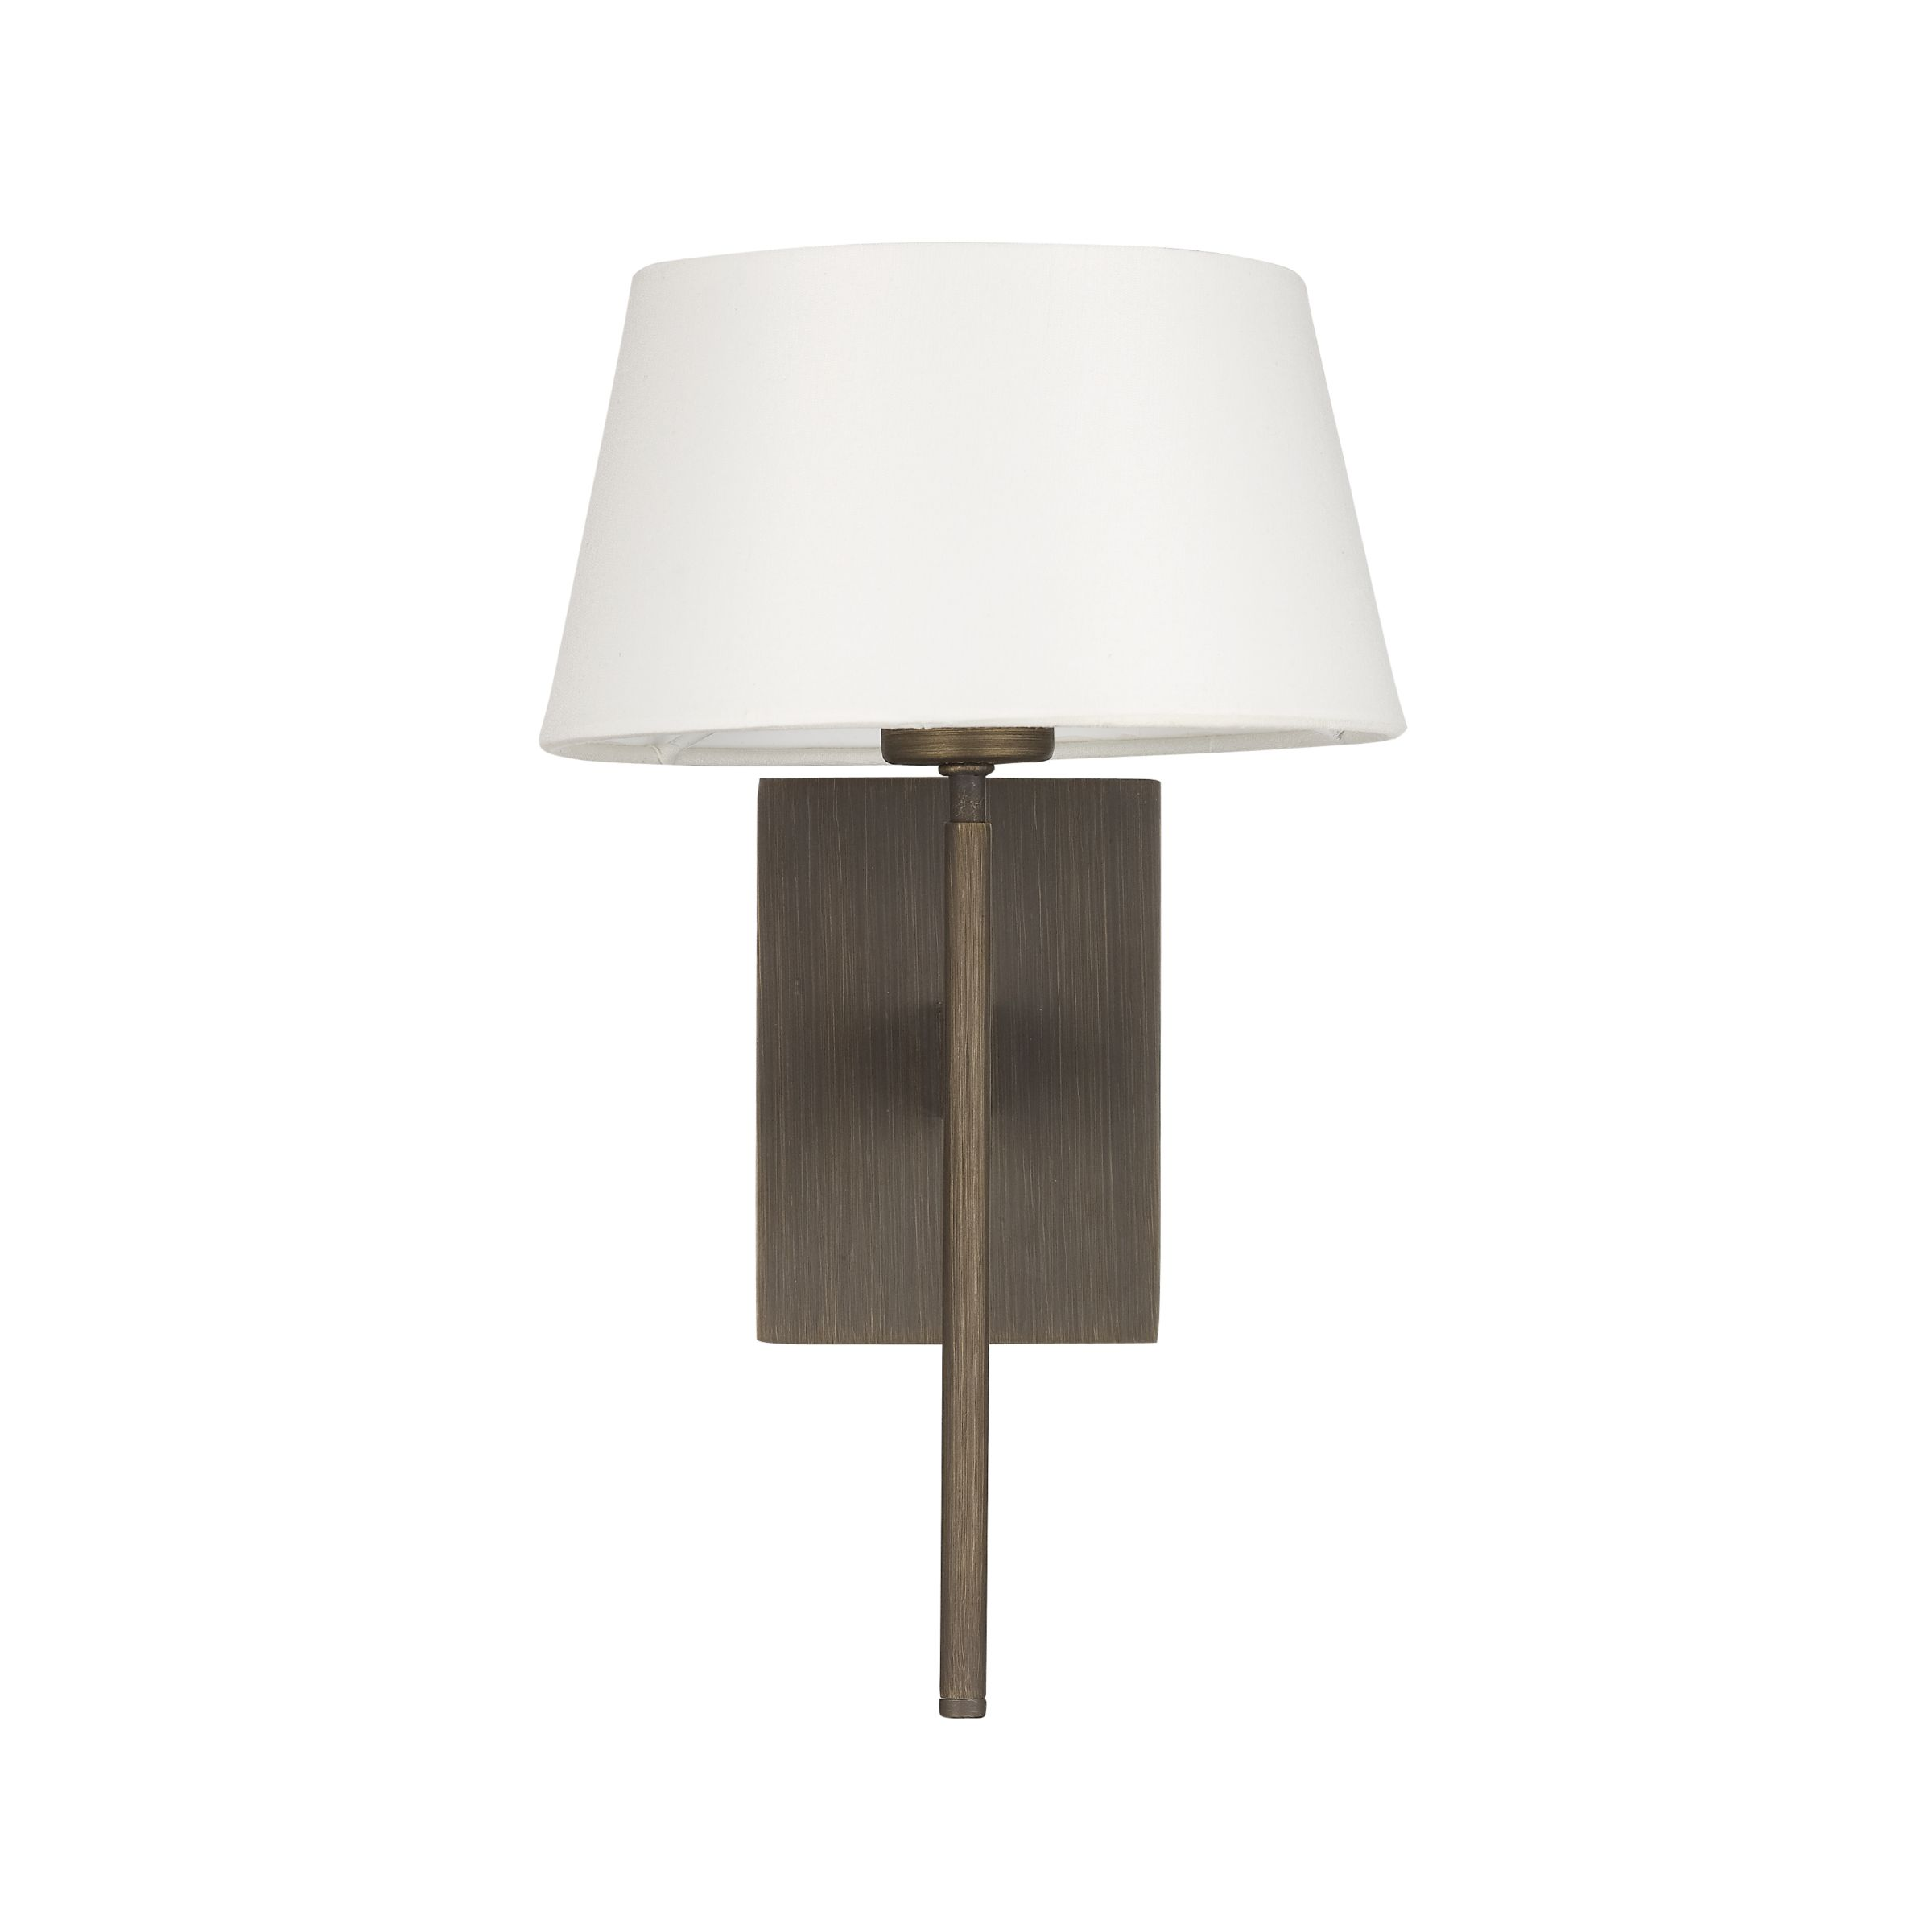 Amalfi Wall Light John Lewis : otto wall lights